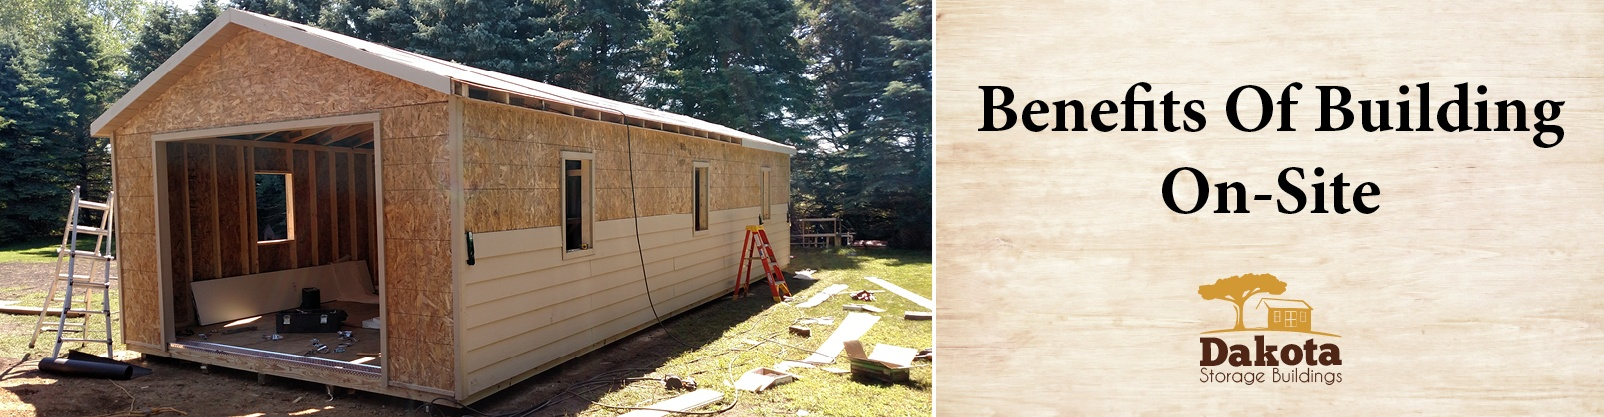 Benefits of Building a Garage or Shed On-Site​